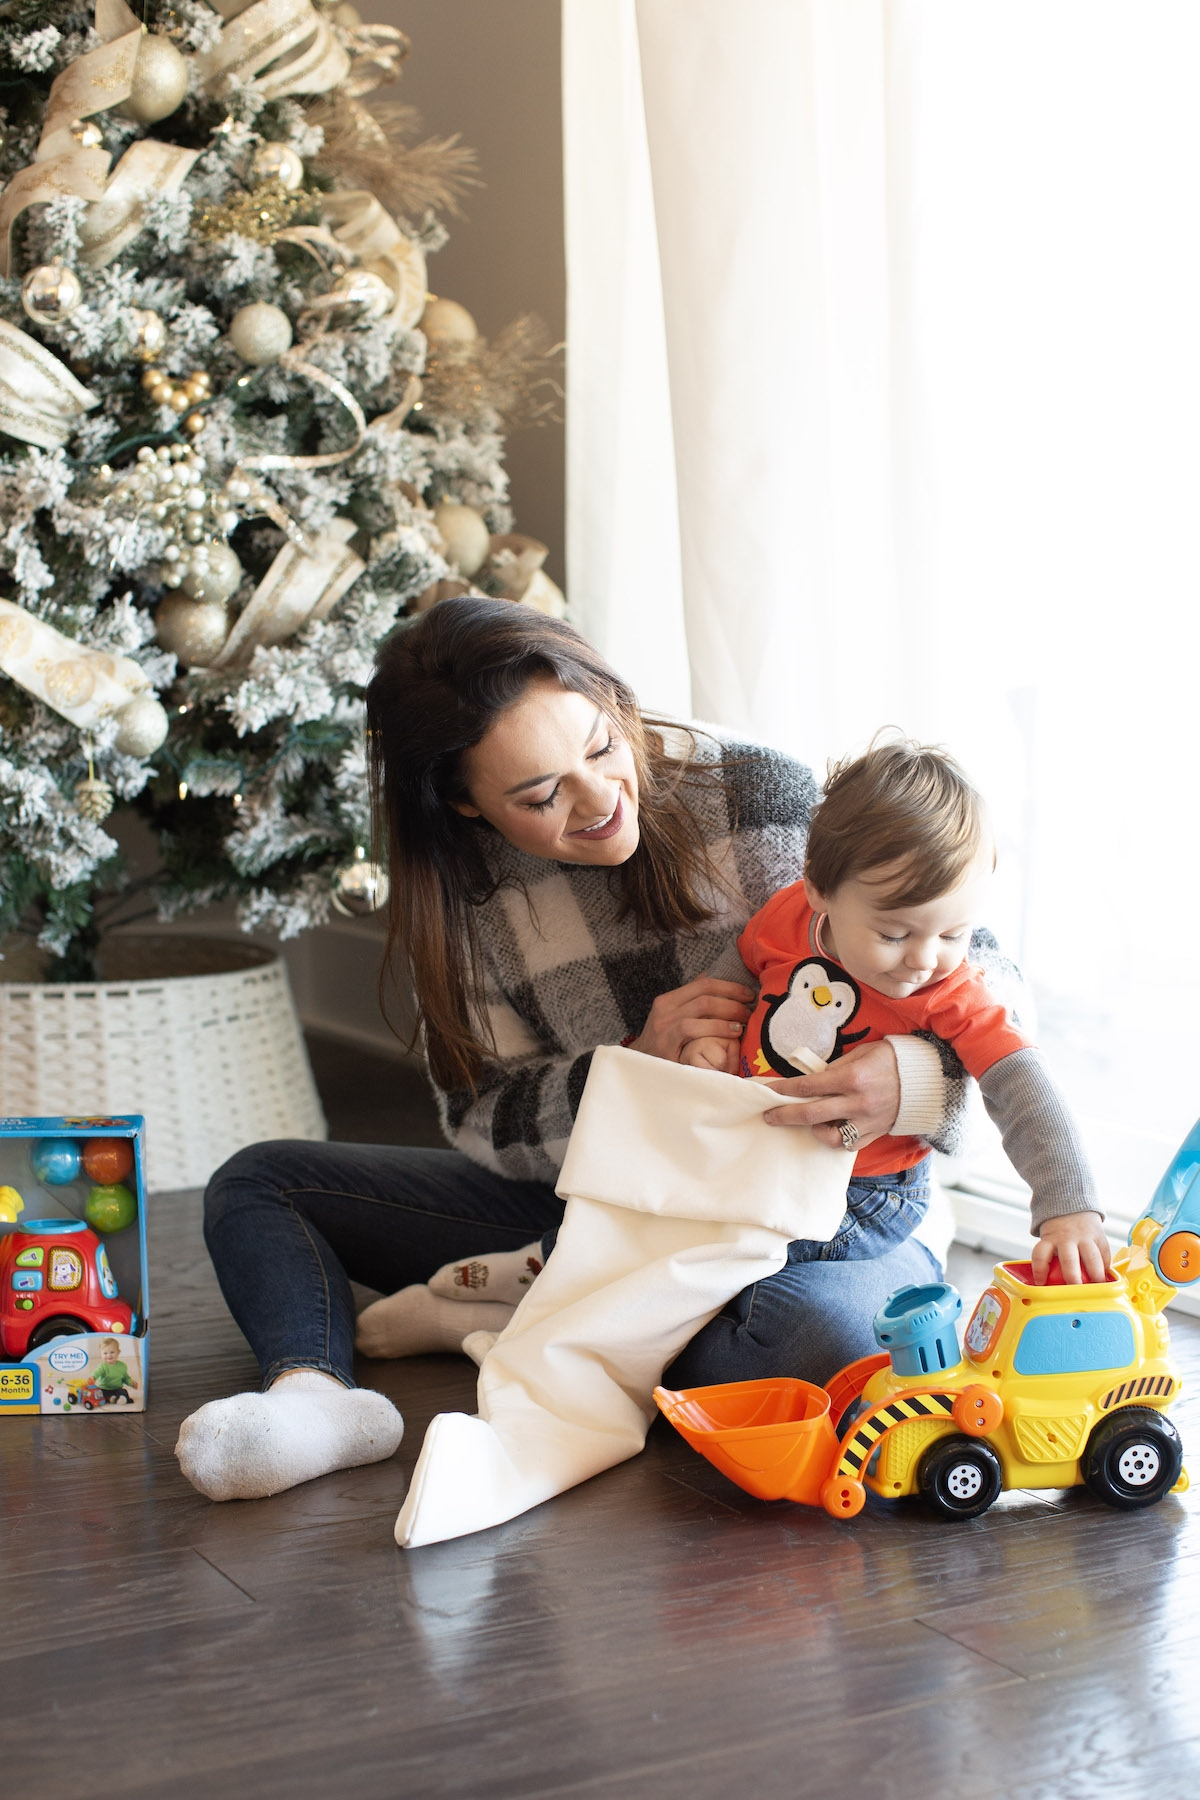 Holiday Gift Guide: Top 10 Walmart Educational Toys For Babies by Life + Style blogger, Heather Brown // My Life Well Loved